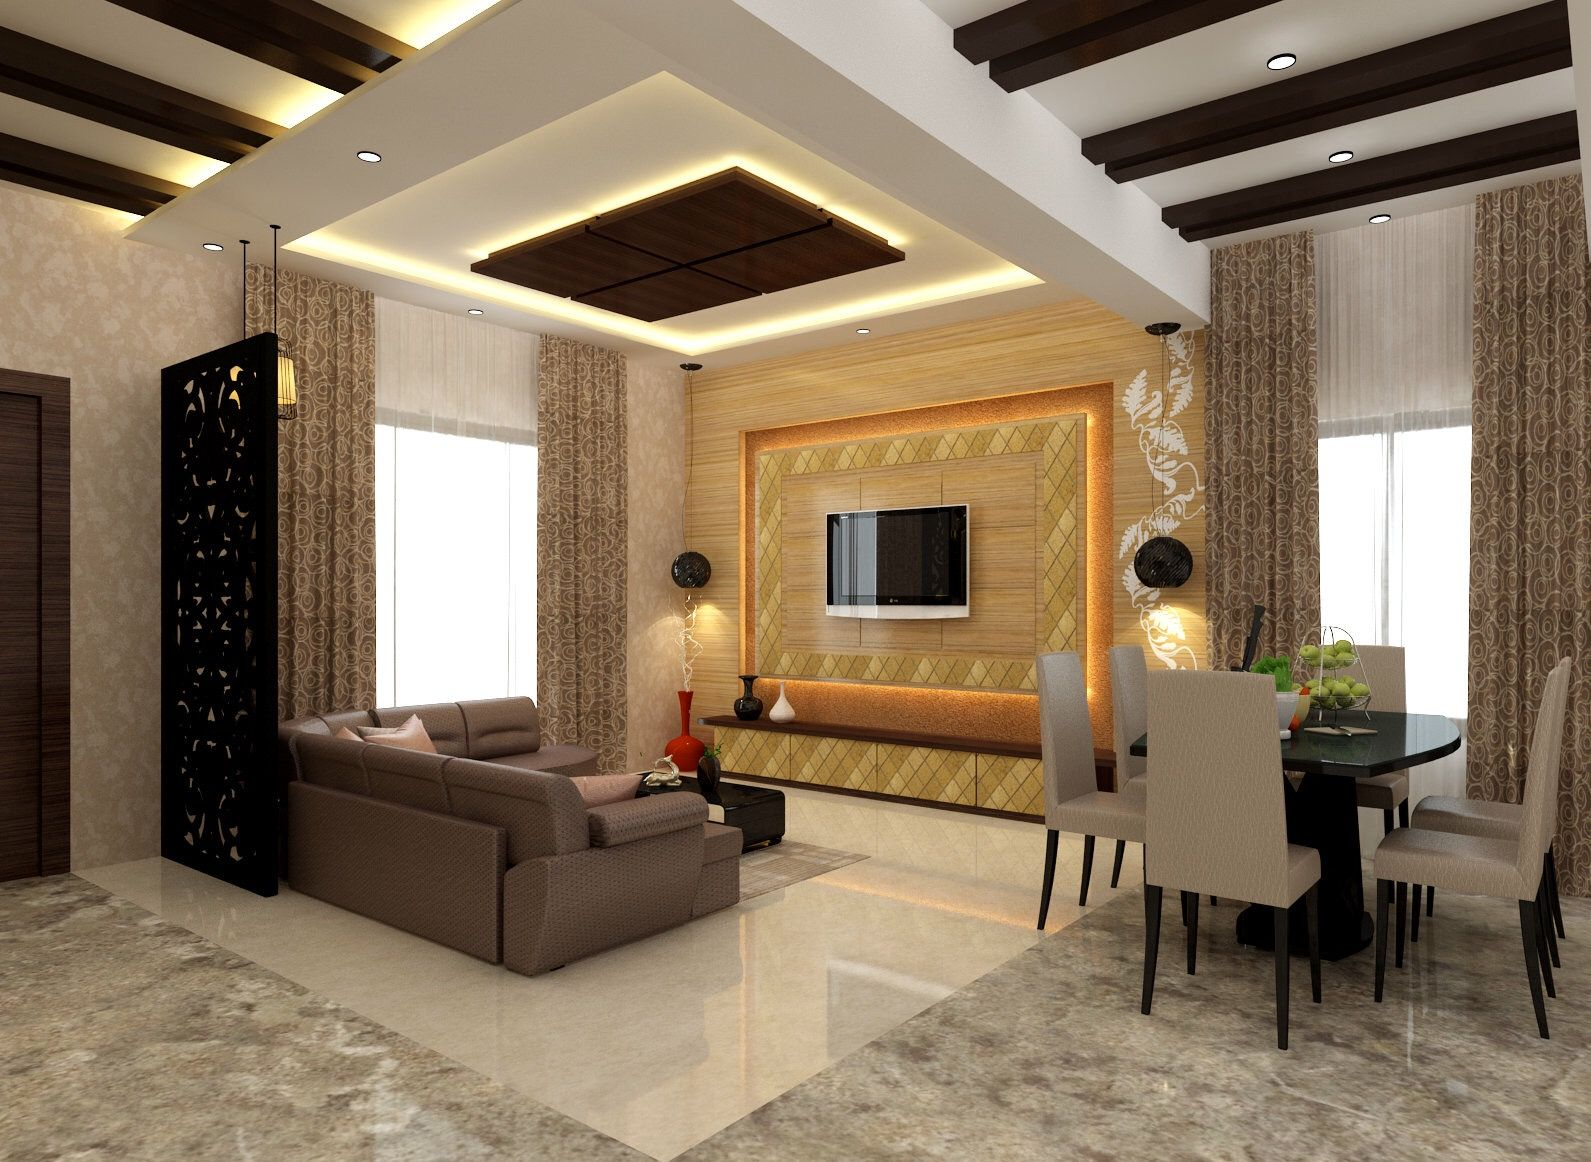 Living Room Luxury Style With Dinning Area Ceiling Design Living